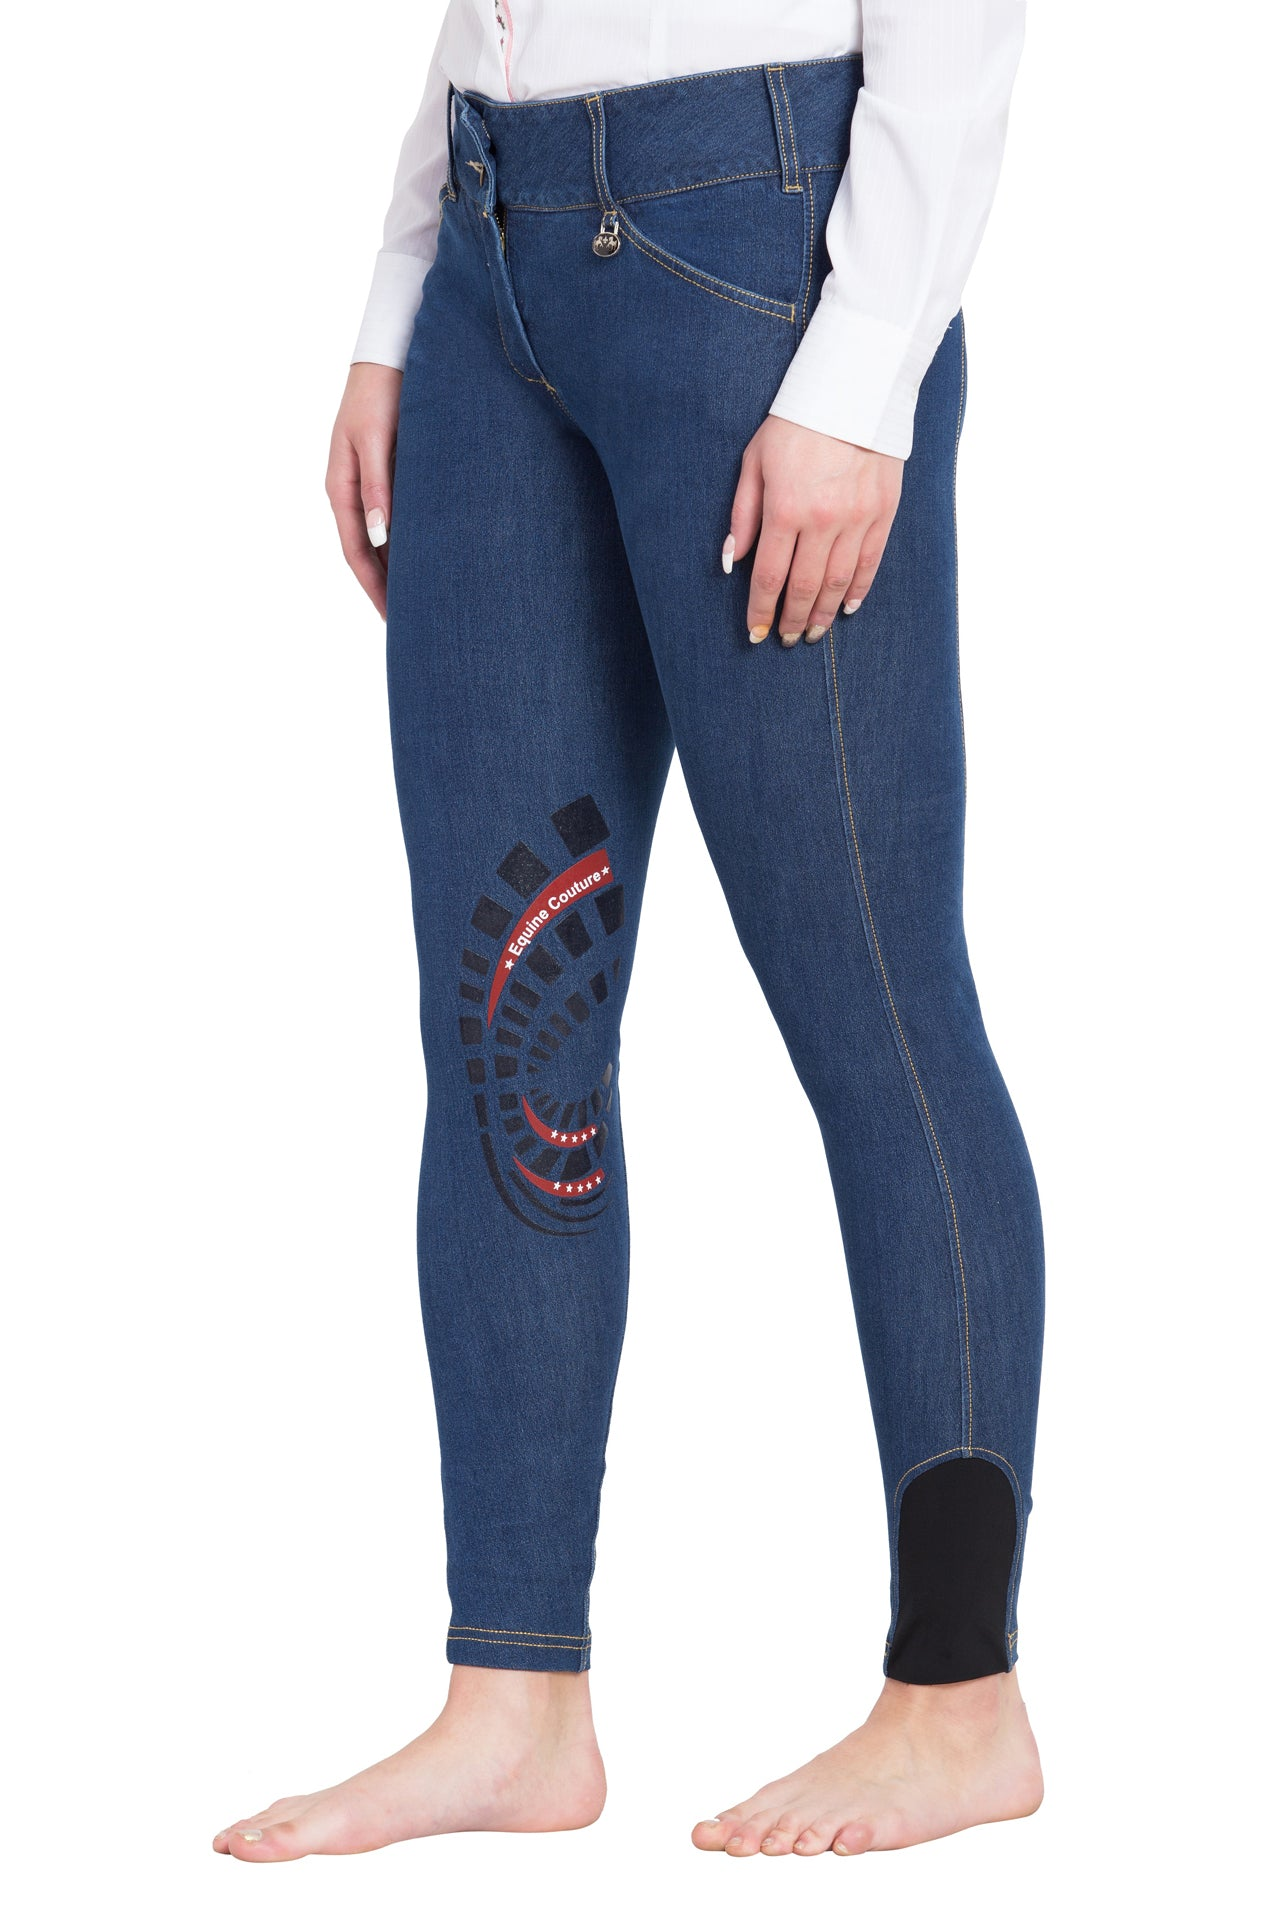 Ladies Calabasas Printed Silicone Patch Denim Jeans - Equine Couture - Breeches.com